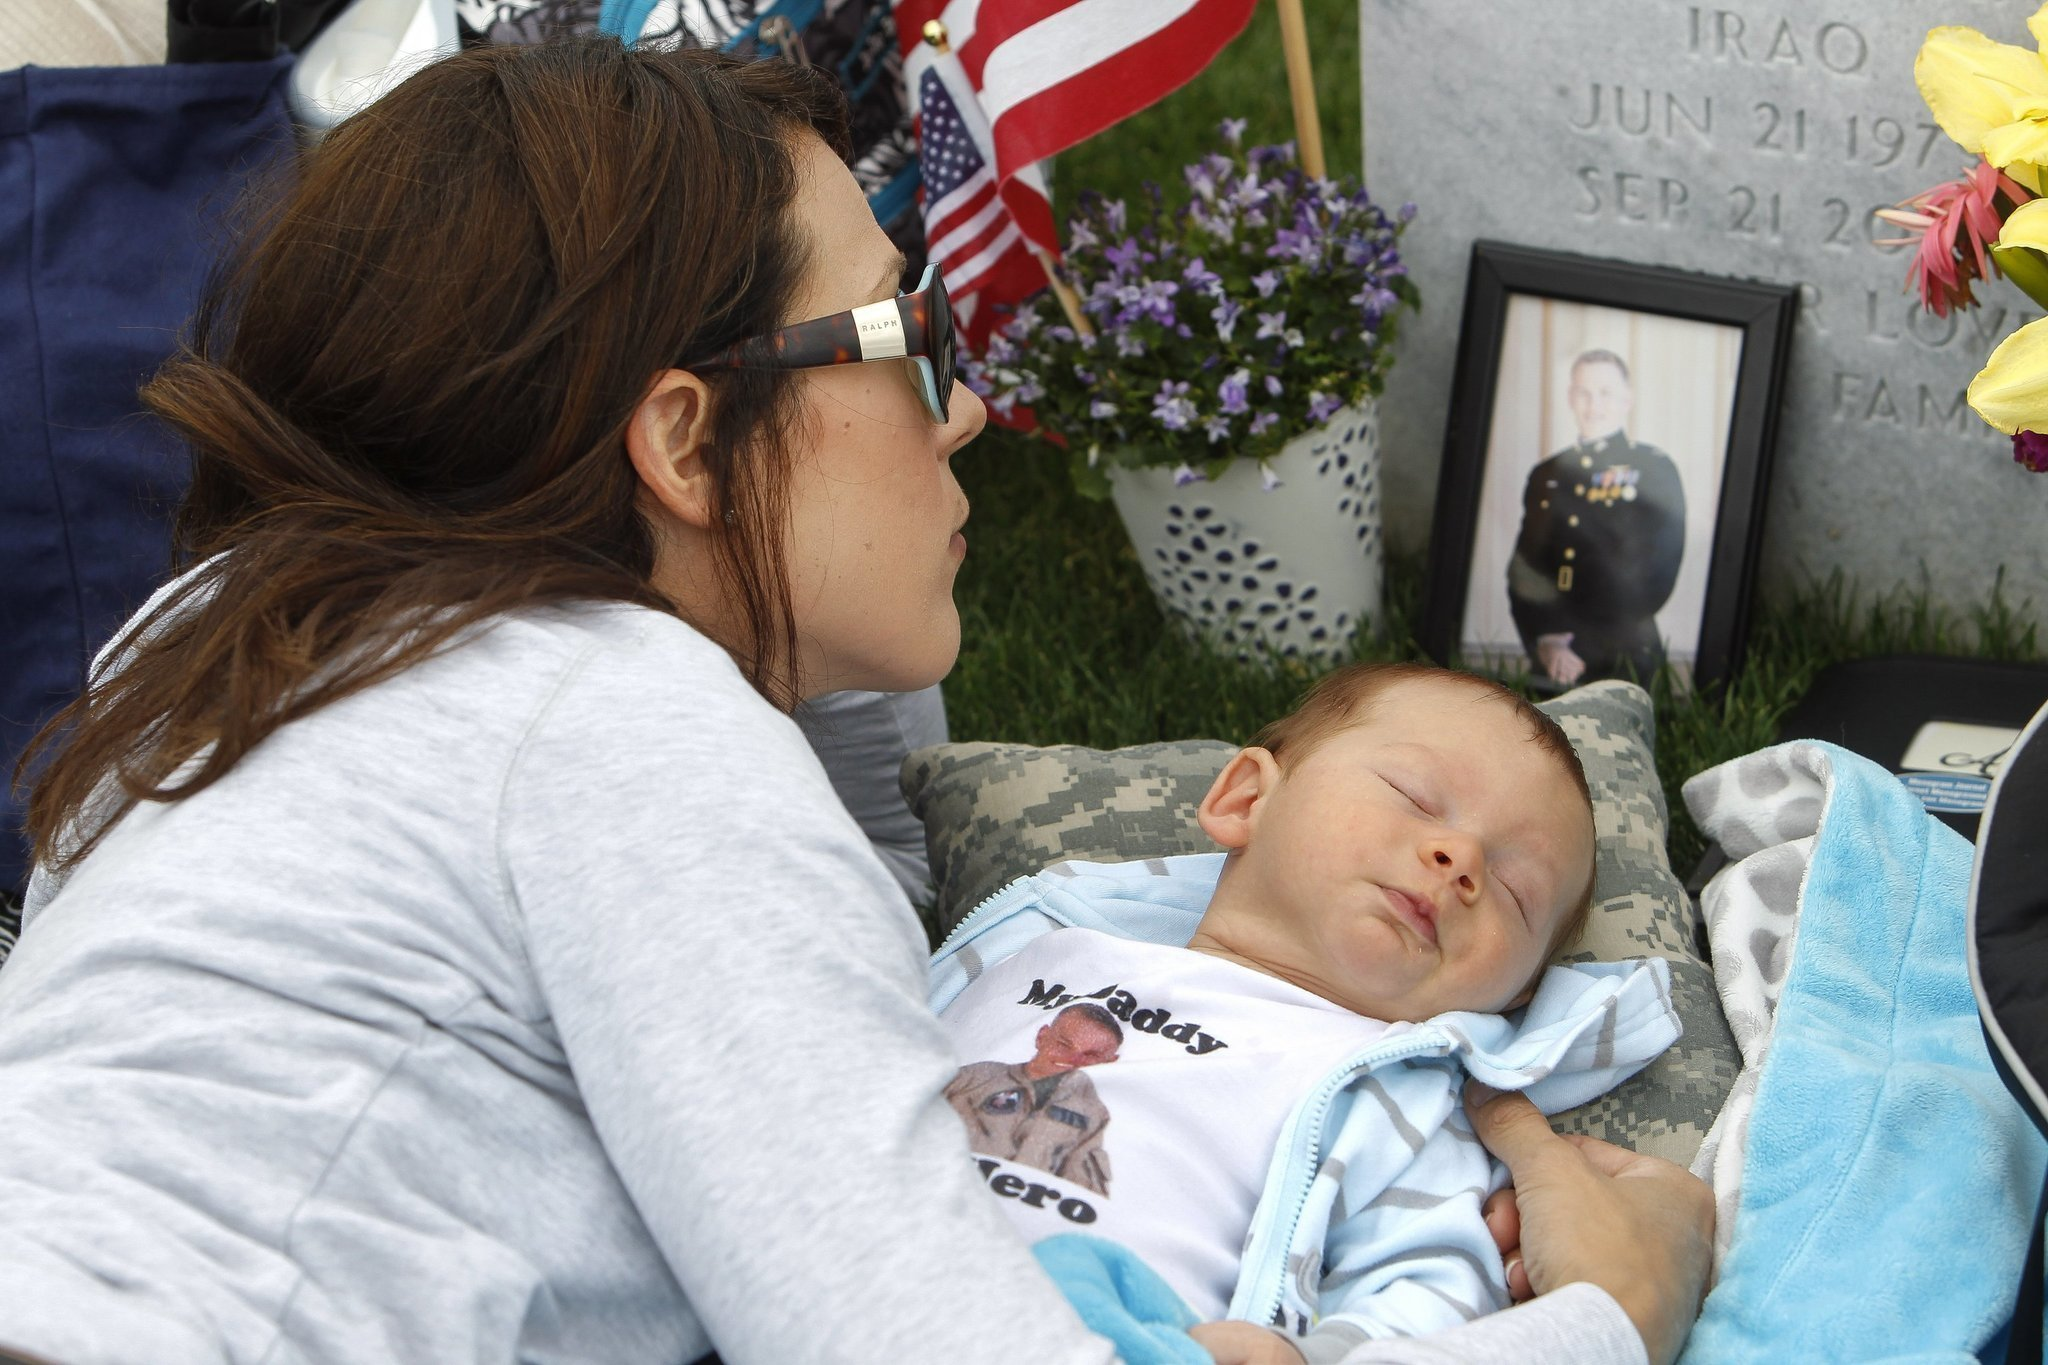 San Diego Motorcycle >> At national cemetery, sentinels to love - The San Diego Union-Tribune